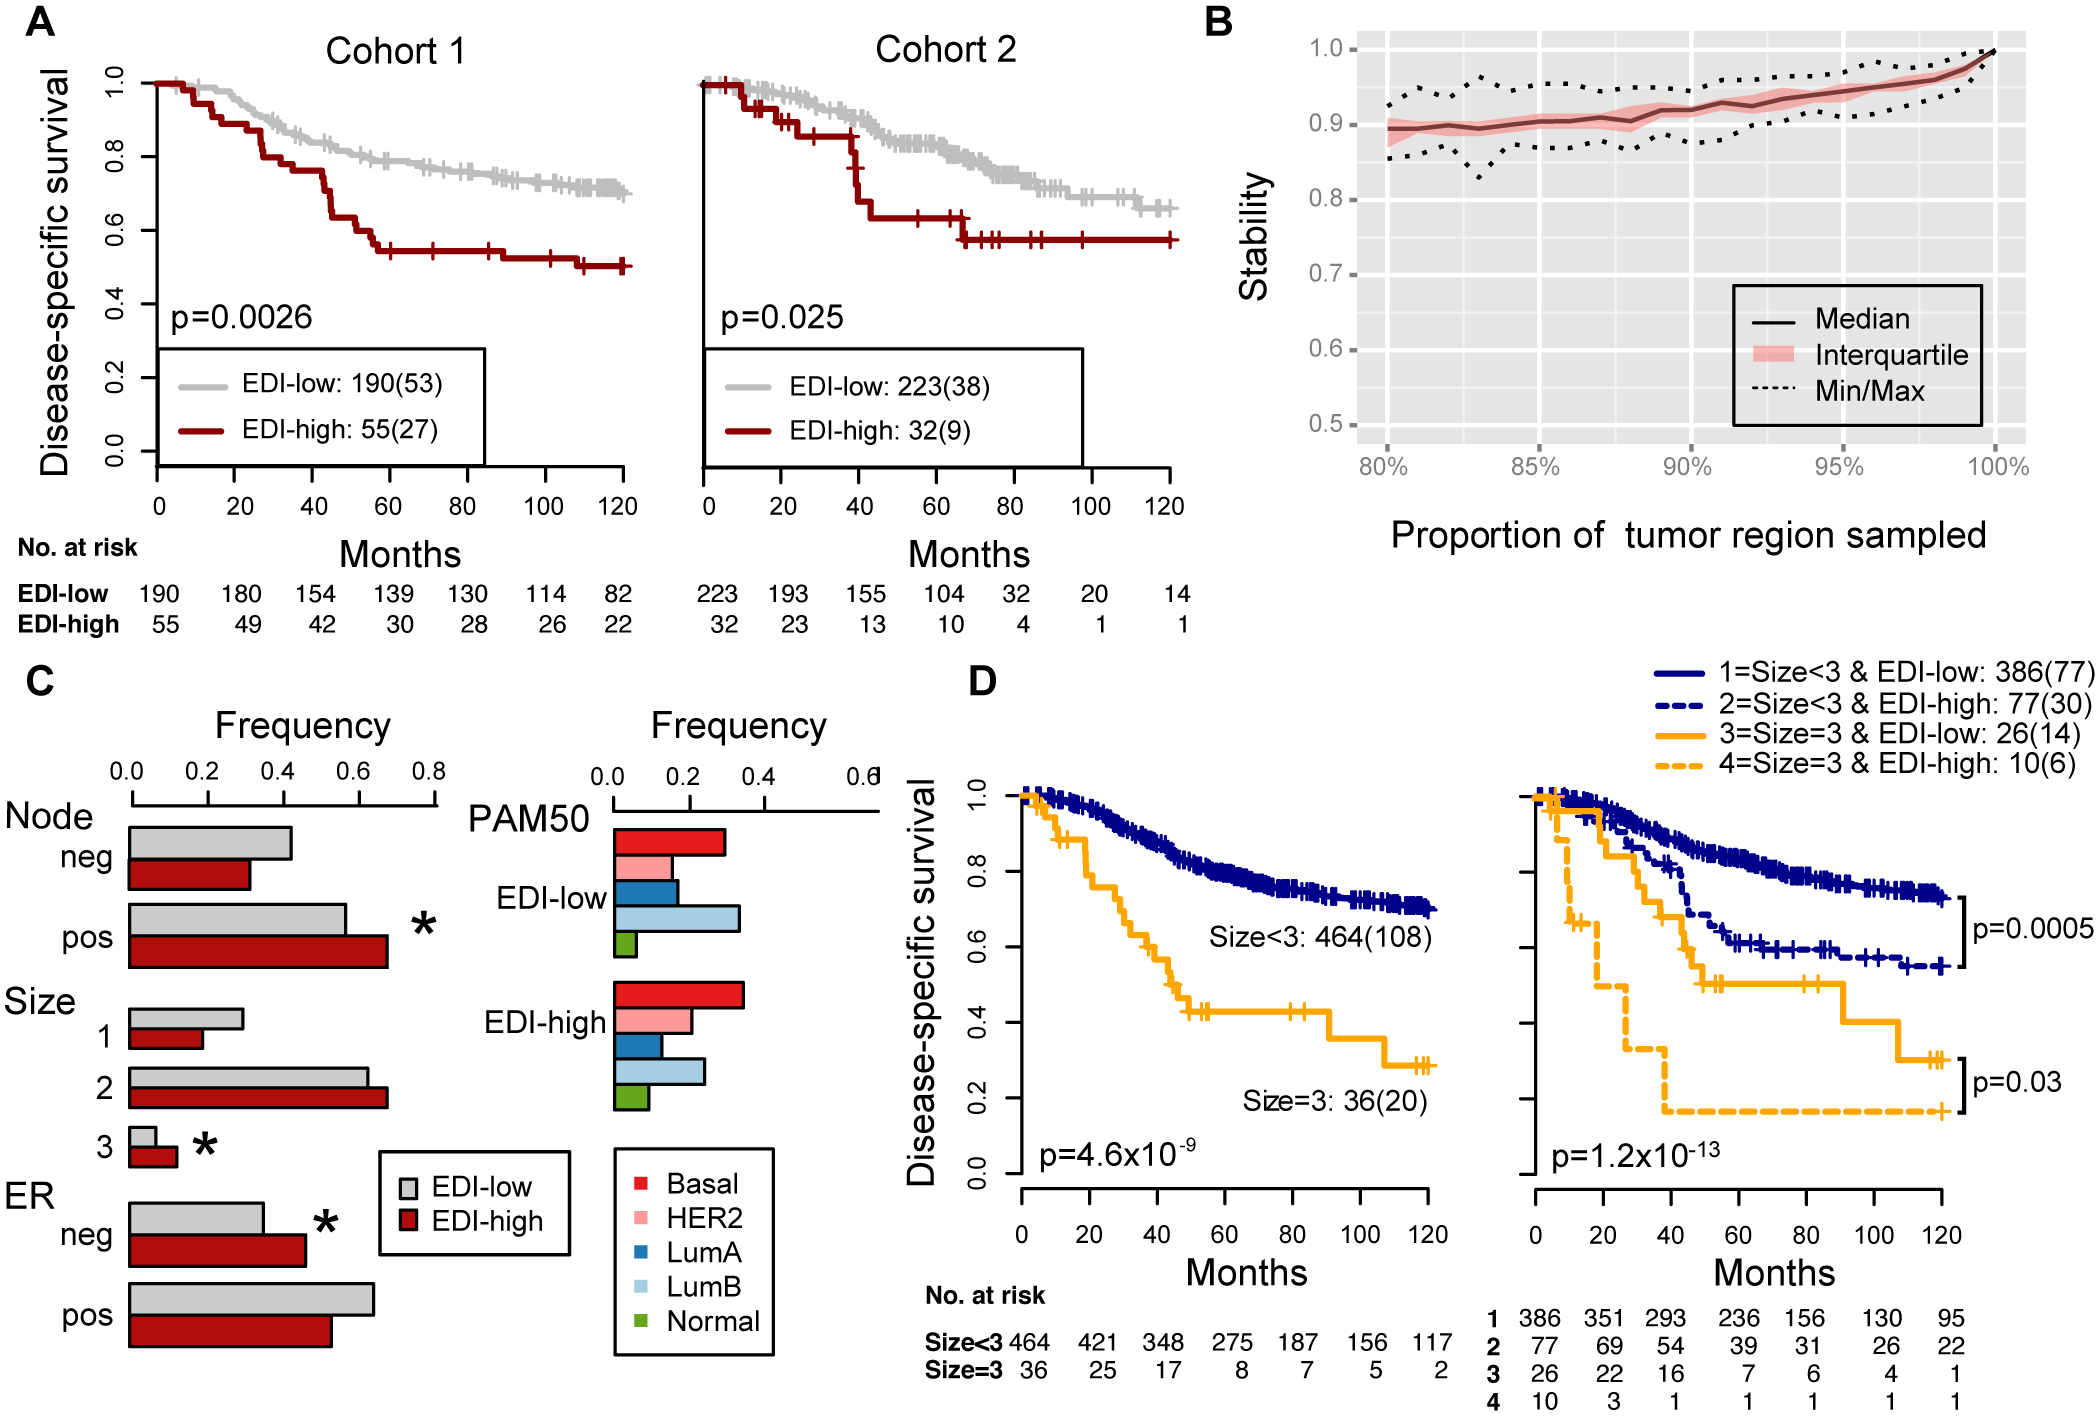 Reproducibility, stability, and independence of the EDI-high group in 507 grade 3 breast tumors.